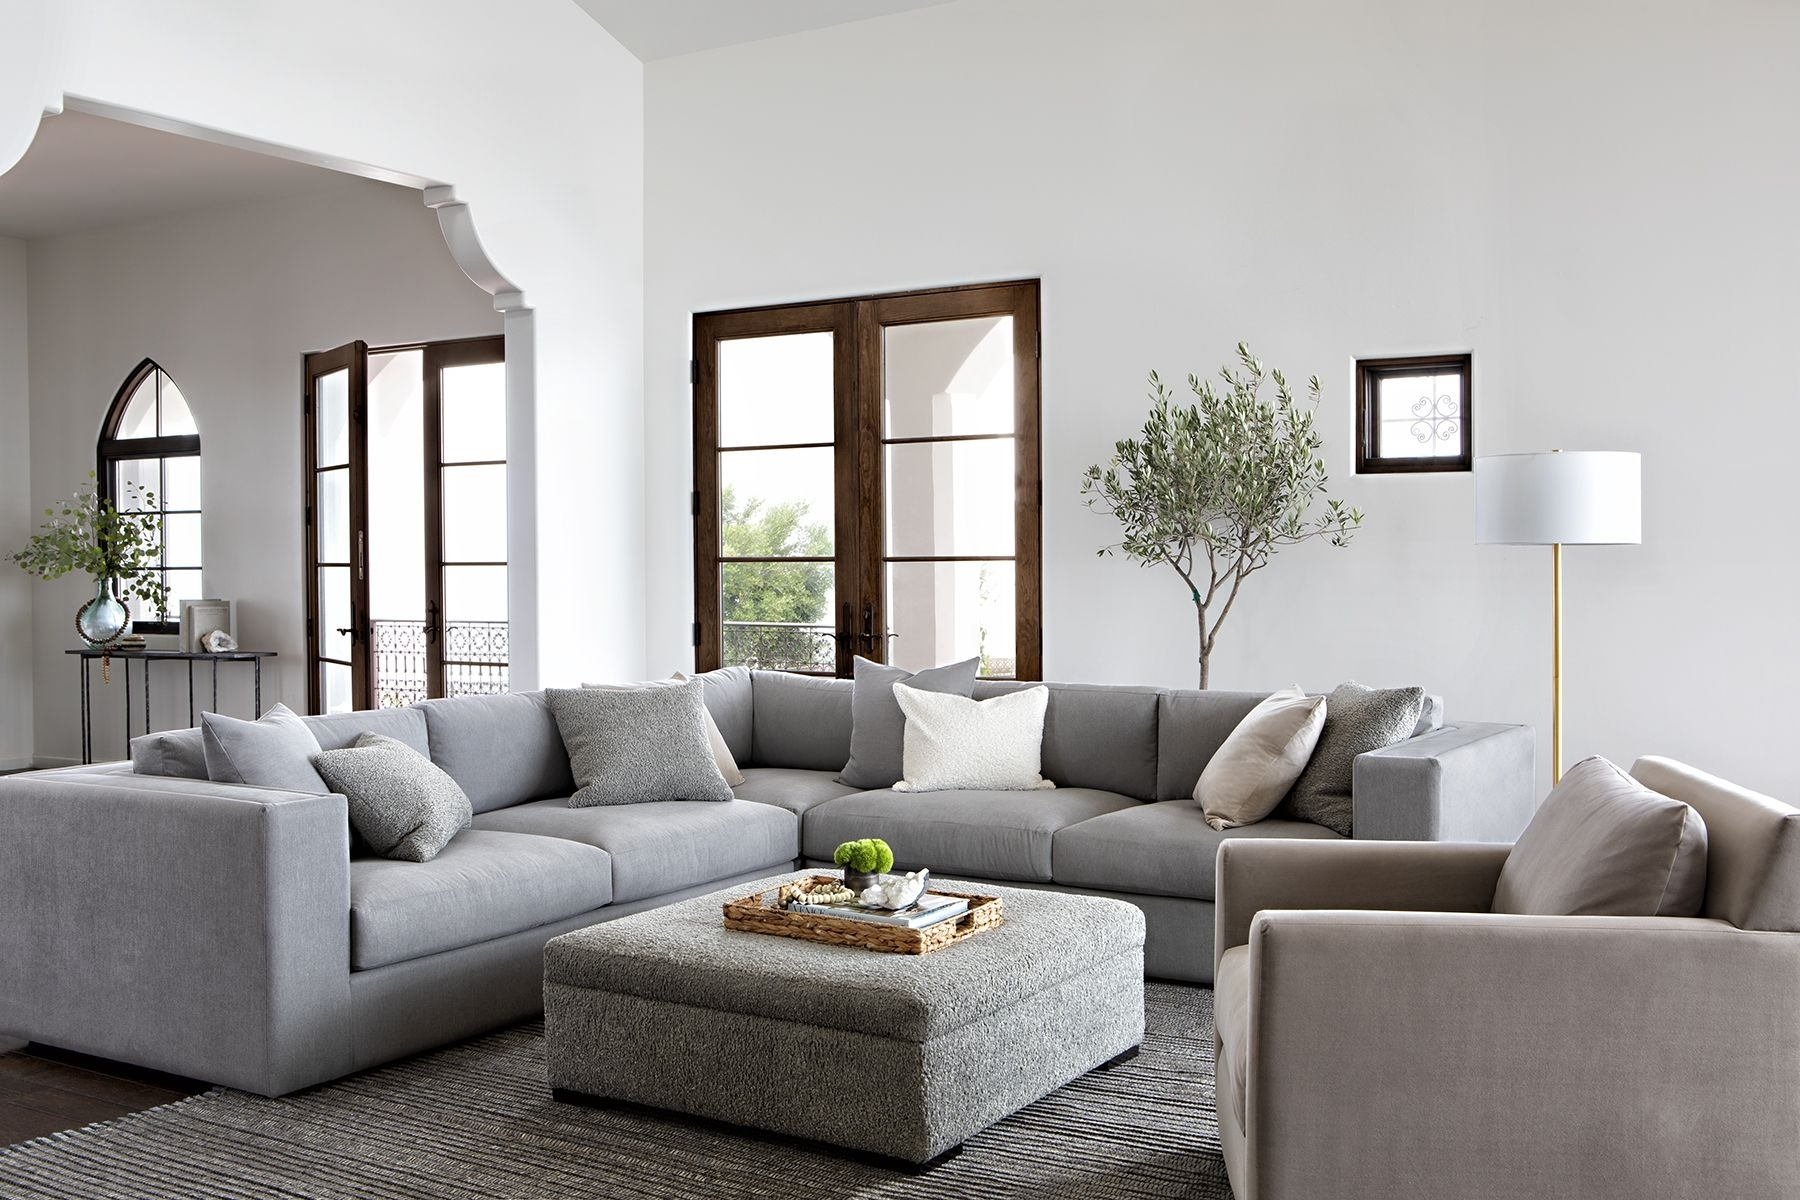 Nate Berkus & Jeremiah Brent's Newest Affordable Collection | Rue with regard to Whitley 3 Piece Sectionals By Nate Berkus And Jeremiah Brent